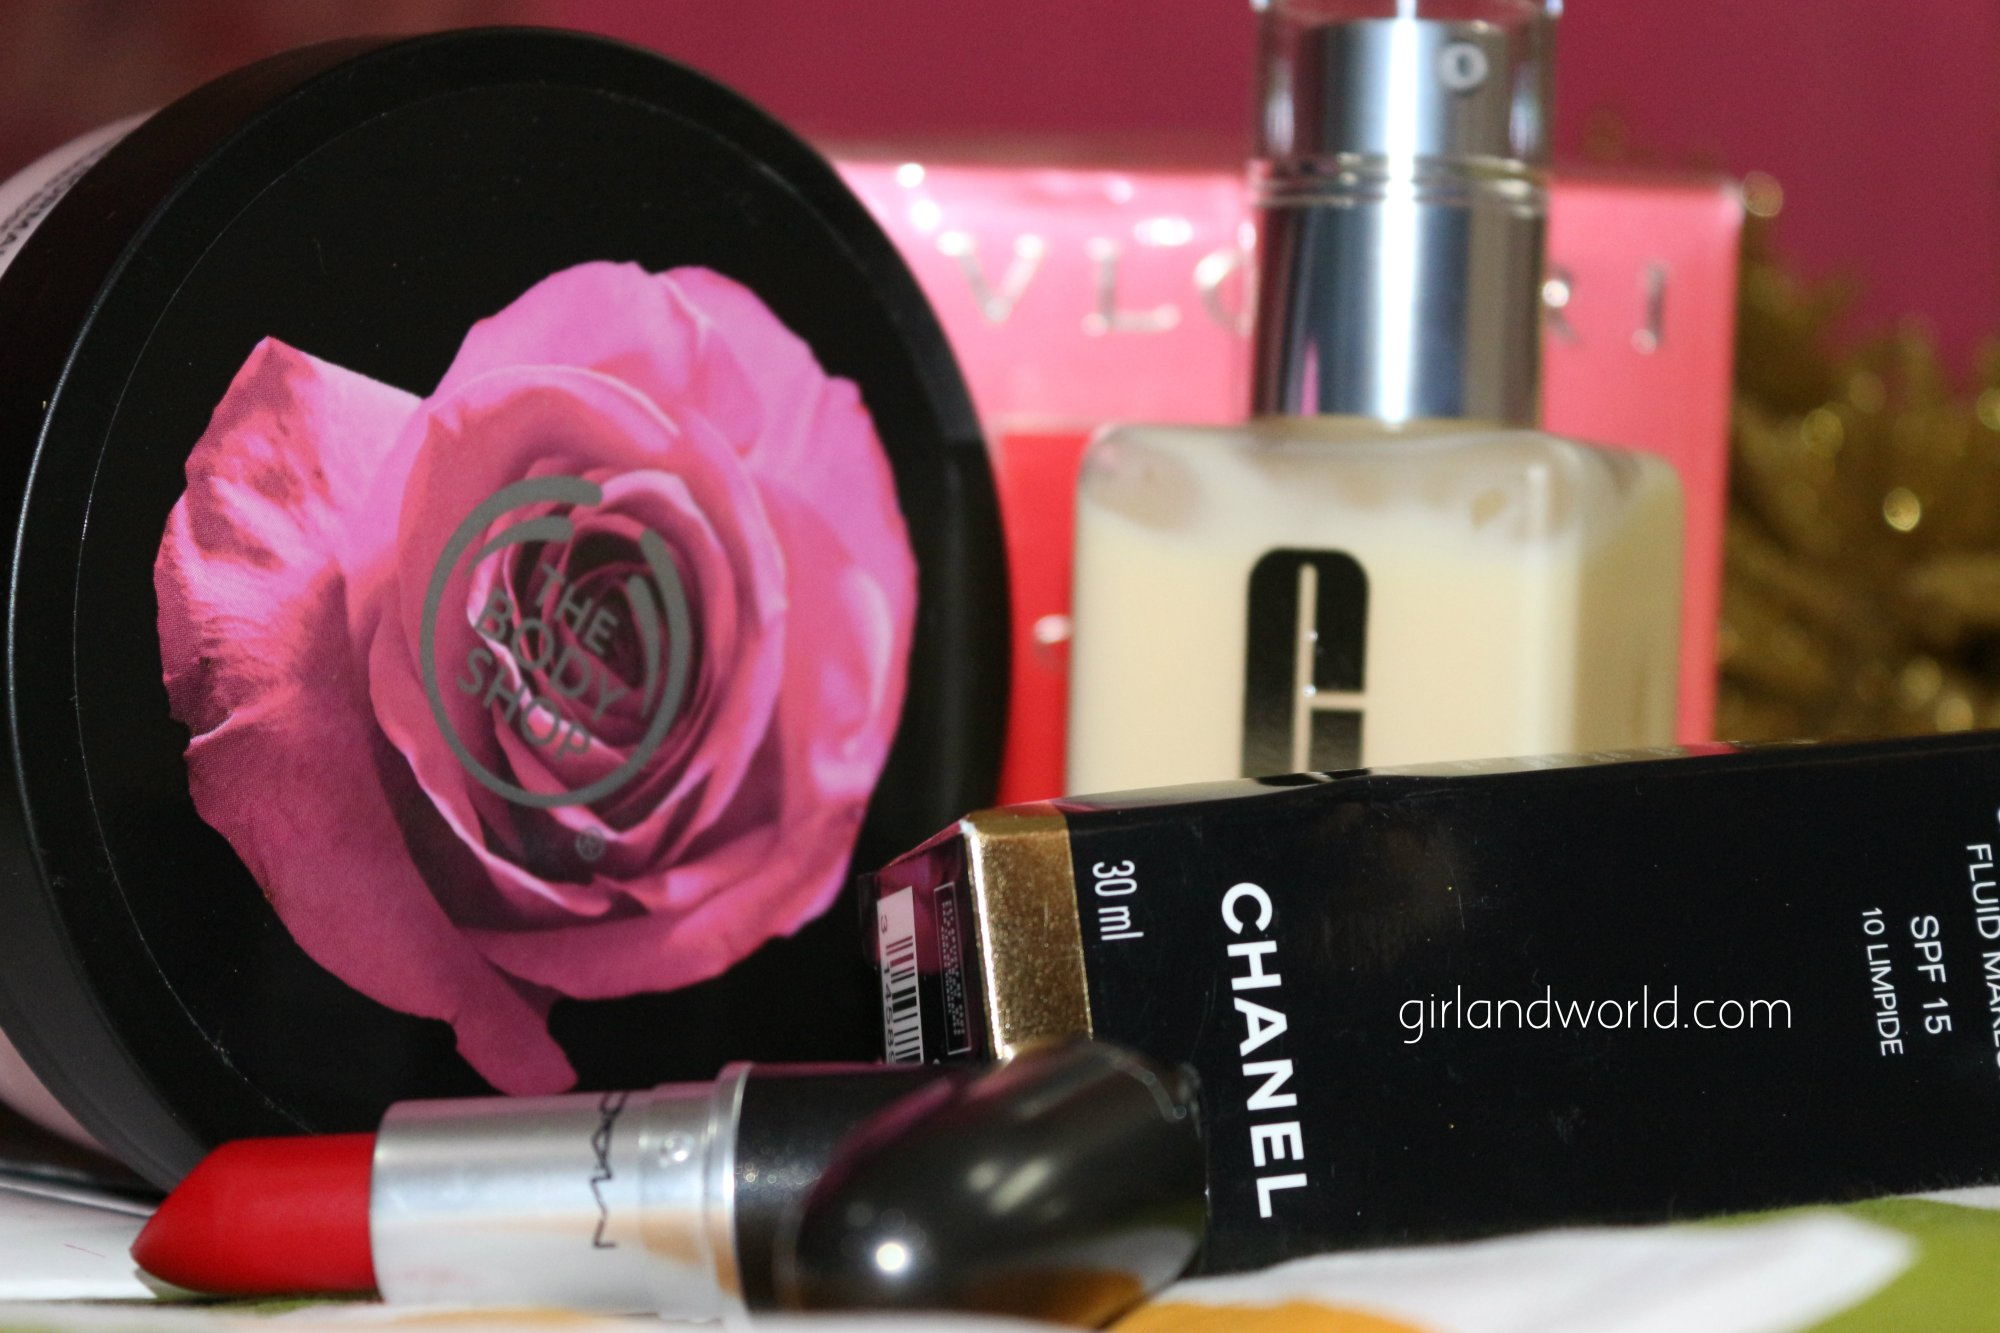 shopping haul,clinique review, chanel review, best foundation,body shop best body butter review shopping at DLF promenade beauty products cosmetics ambience mall vasant kunj shopping dlf emporio